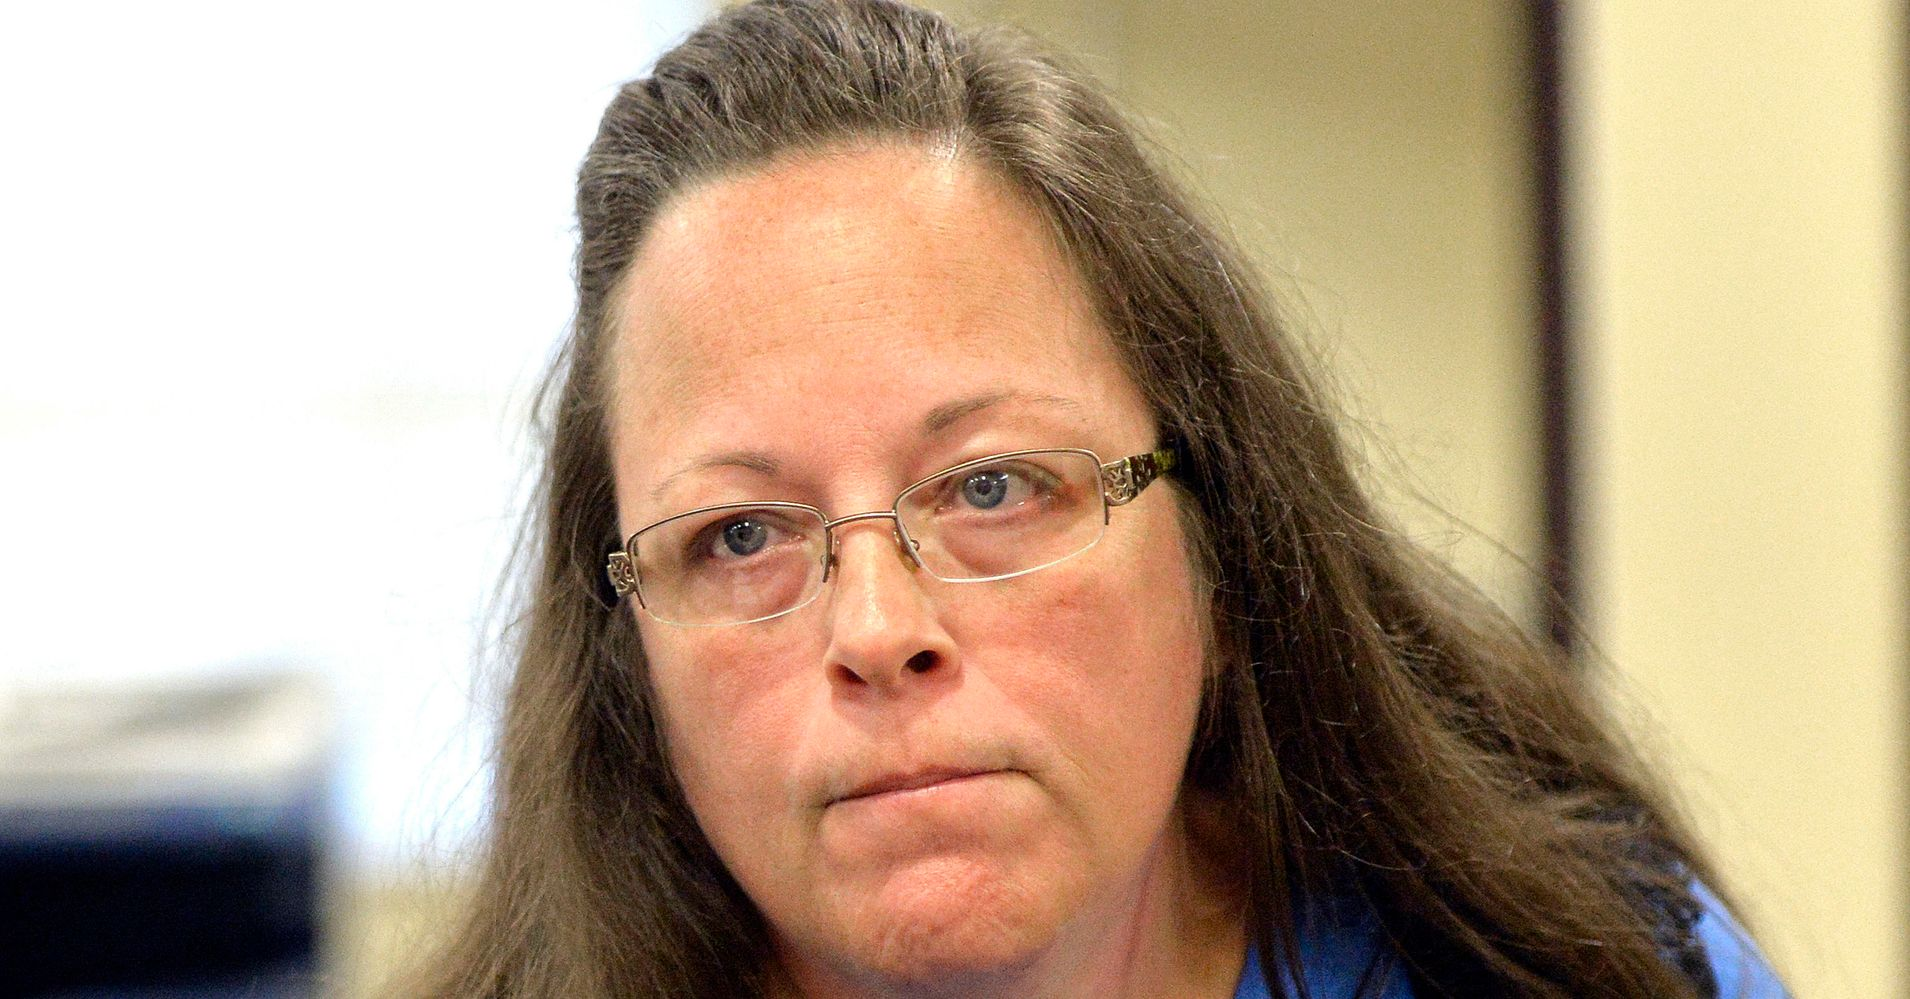 Kim Davis (Yes, That Kim Davis) Just Lost Her Re-election Bid To A Democrat